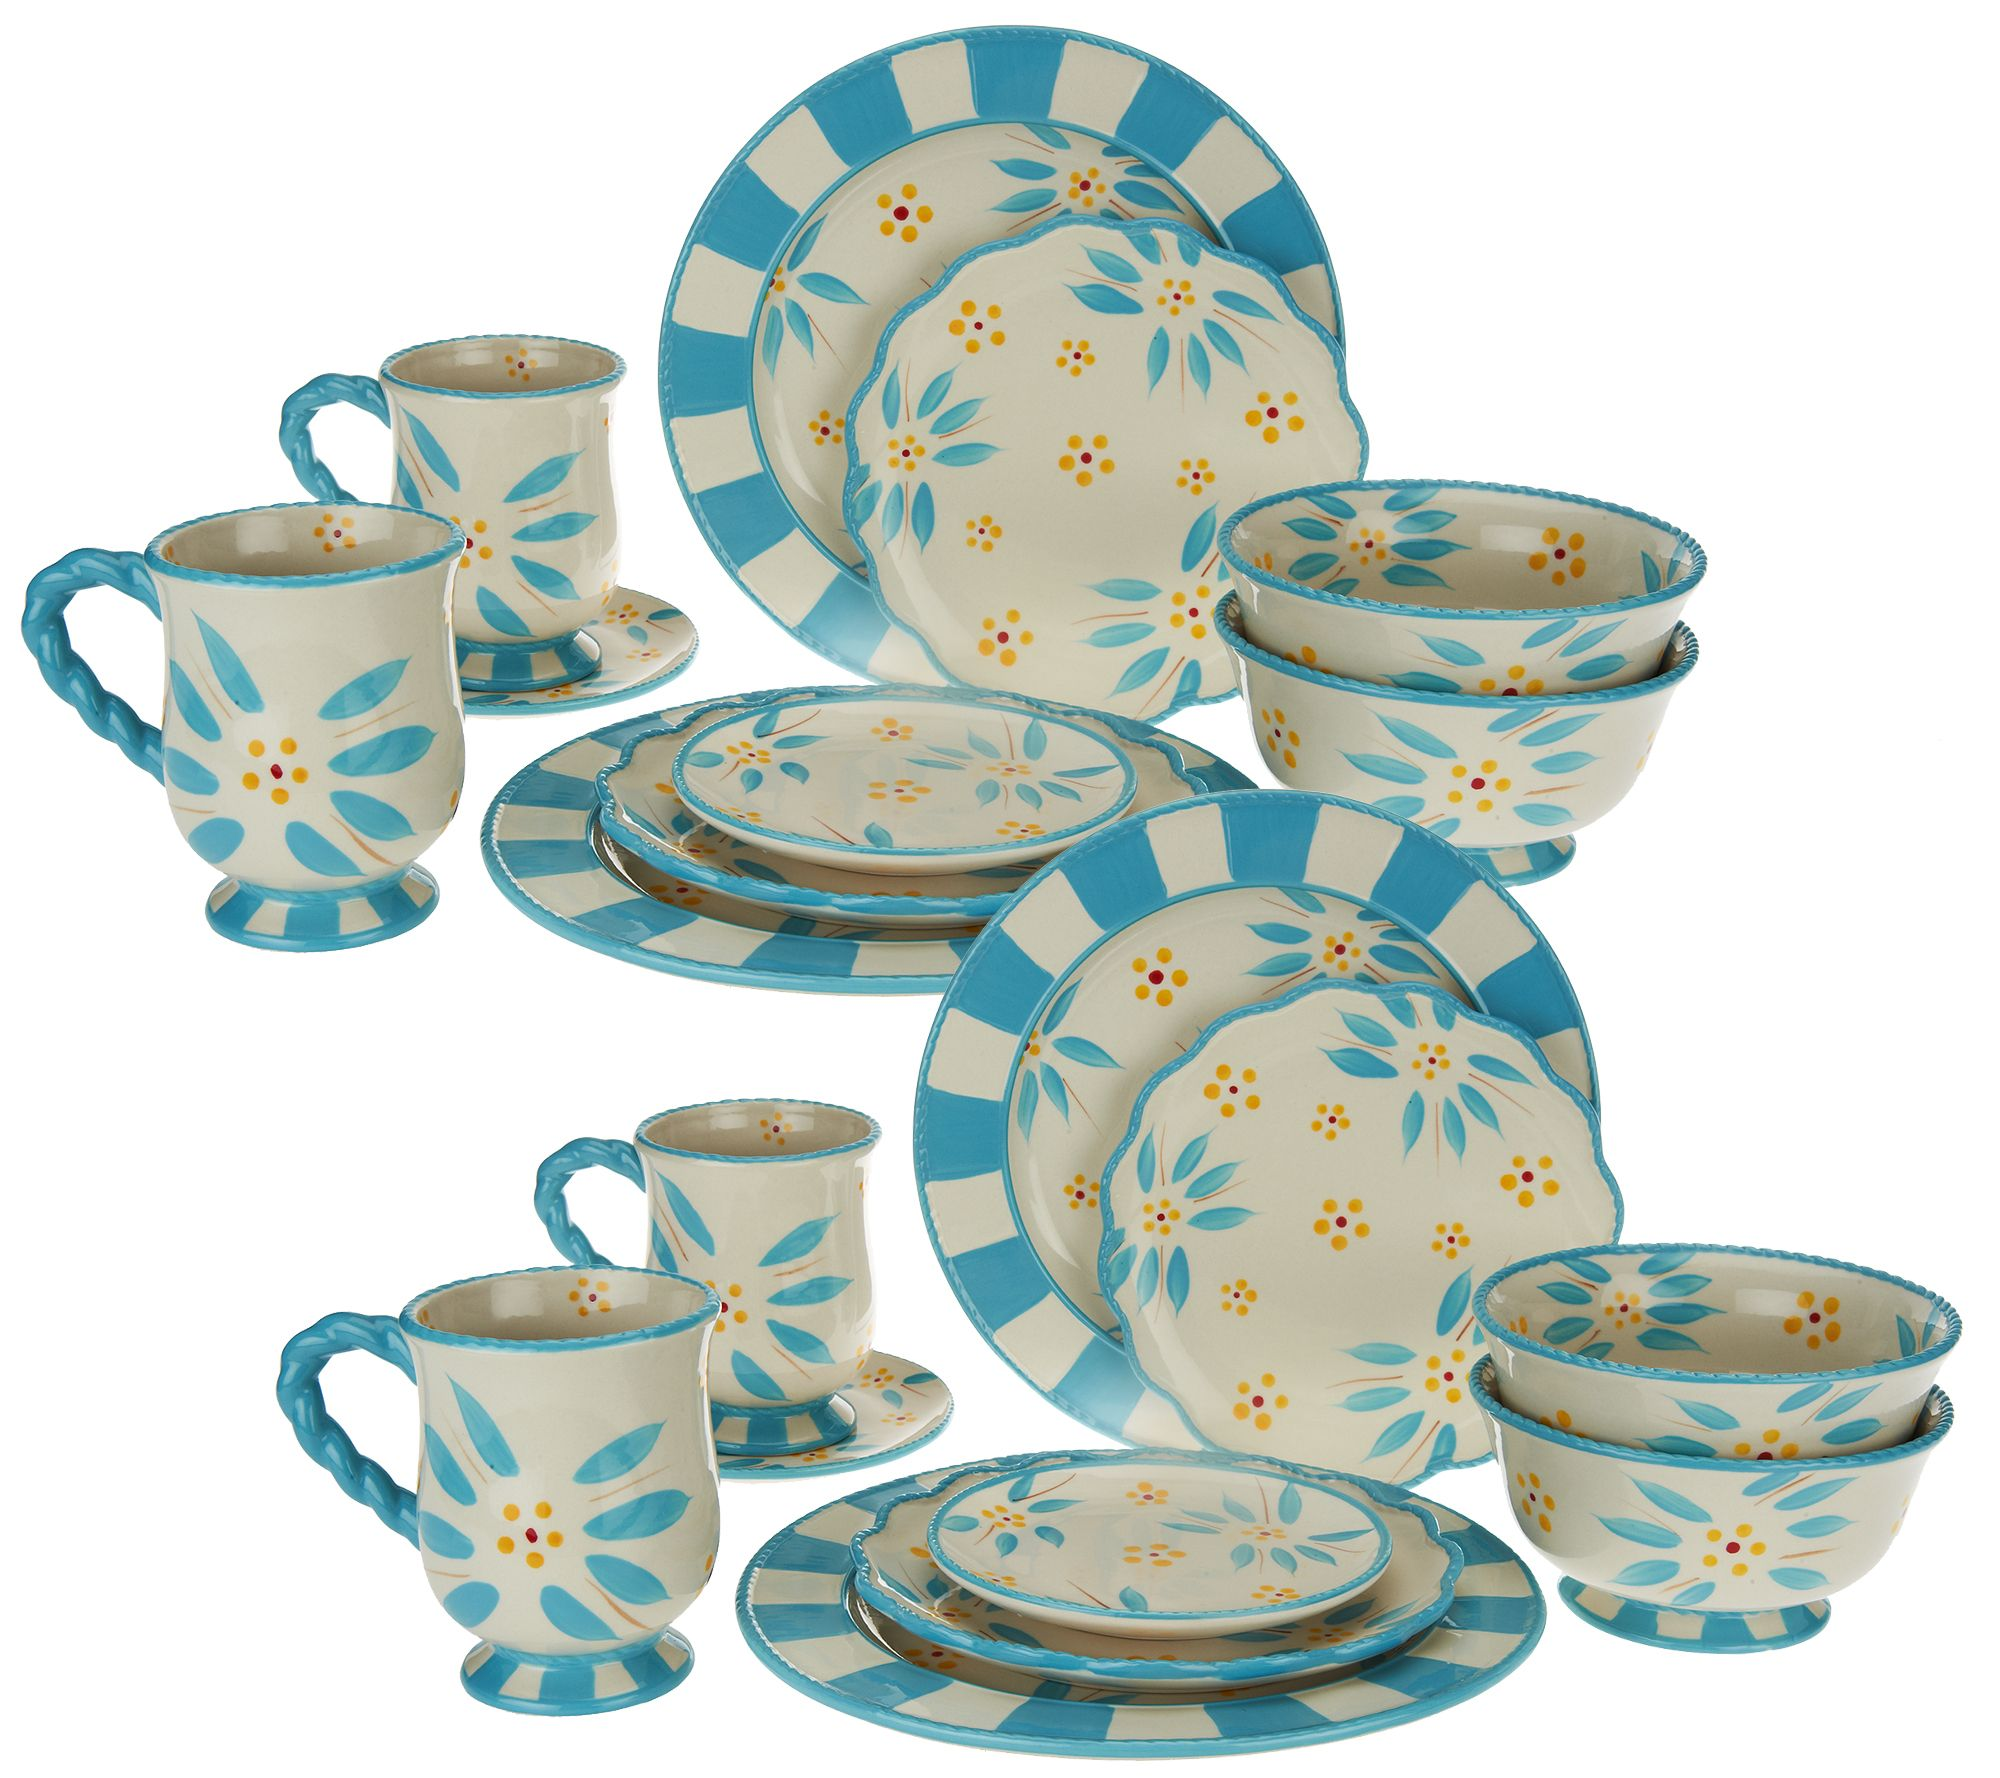 Temp Tations 20 Piece Old World Service For 4 Dinnerware Set   Page 1 U2014  QVC.com